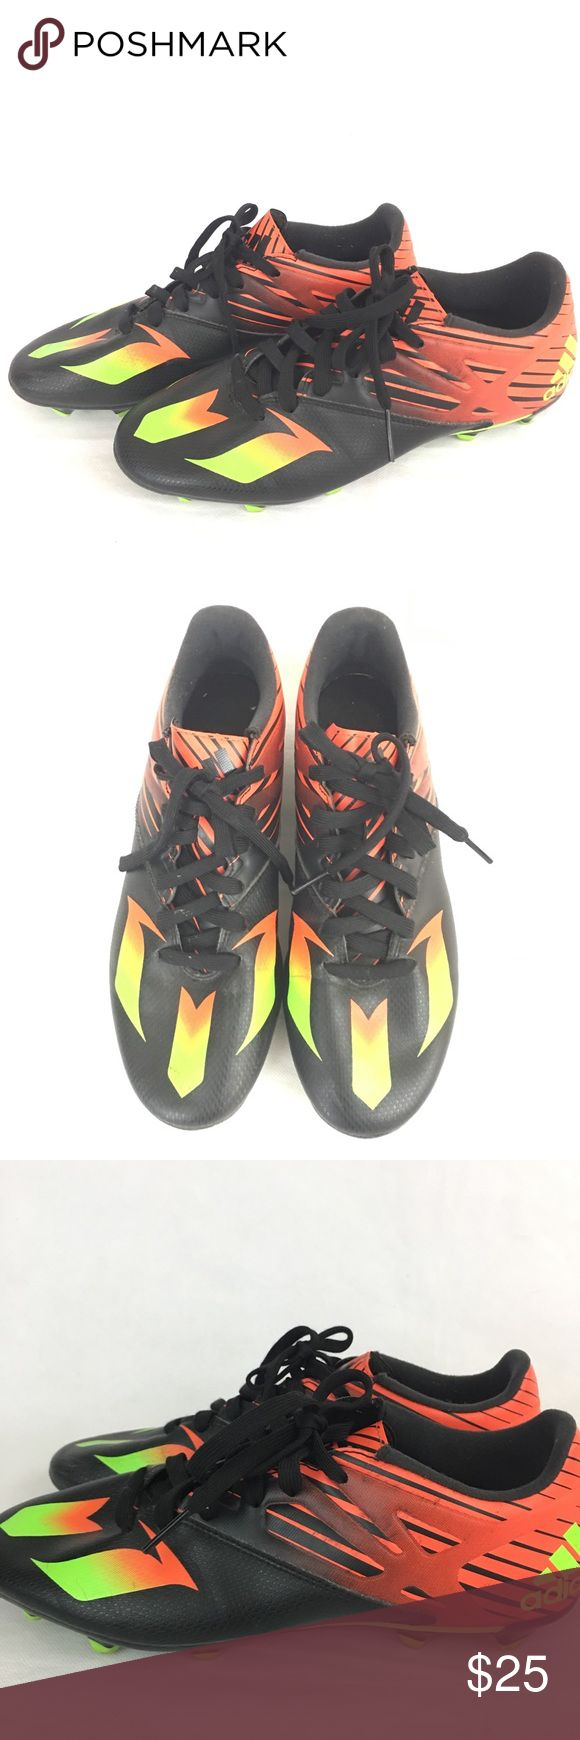 Adidas Messi Soccer Cleats Shoes Men's Soccer Cleats shoes. Size 9. Style AF4852. Good condition. adidas Shoes Athletic Shoes